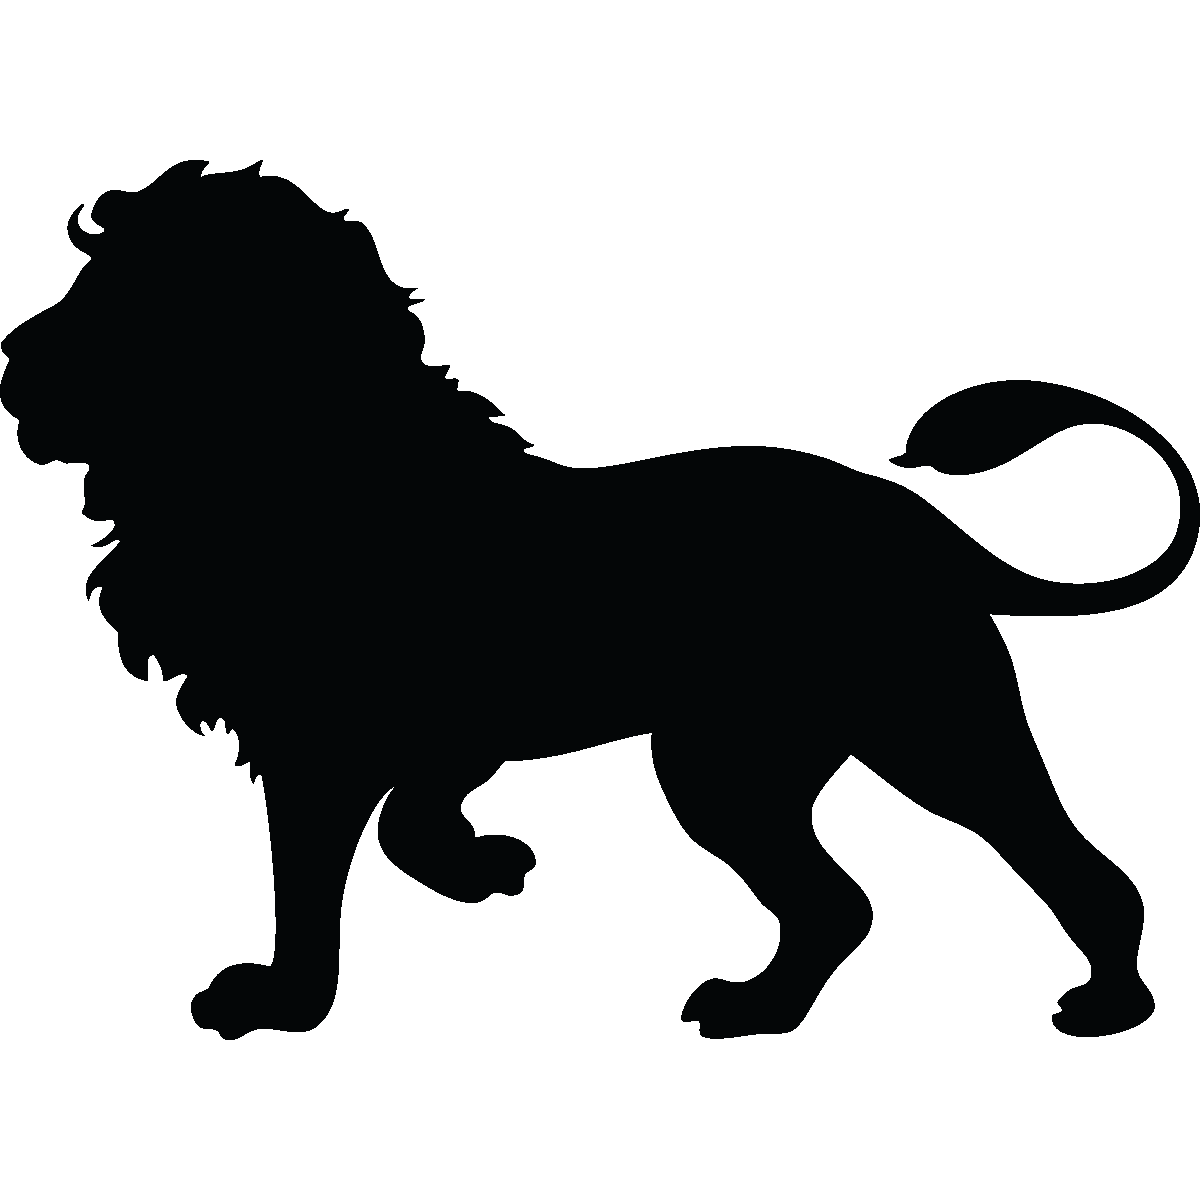 Sticker lion majestueux pinterest. Silhouette clipart monkey